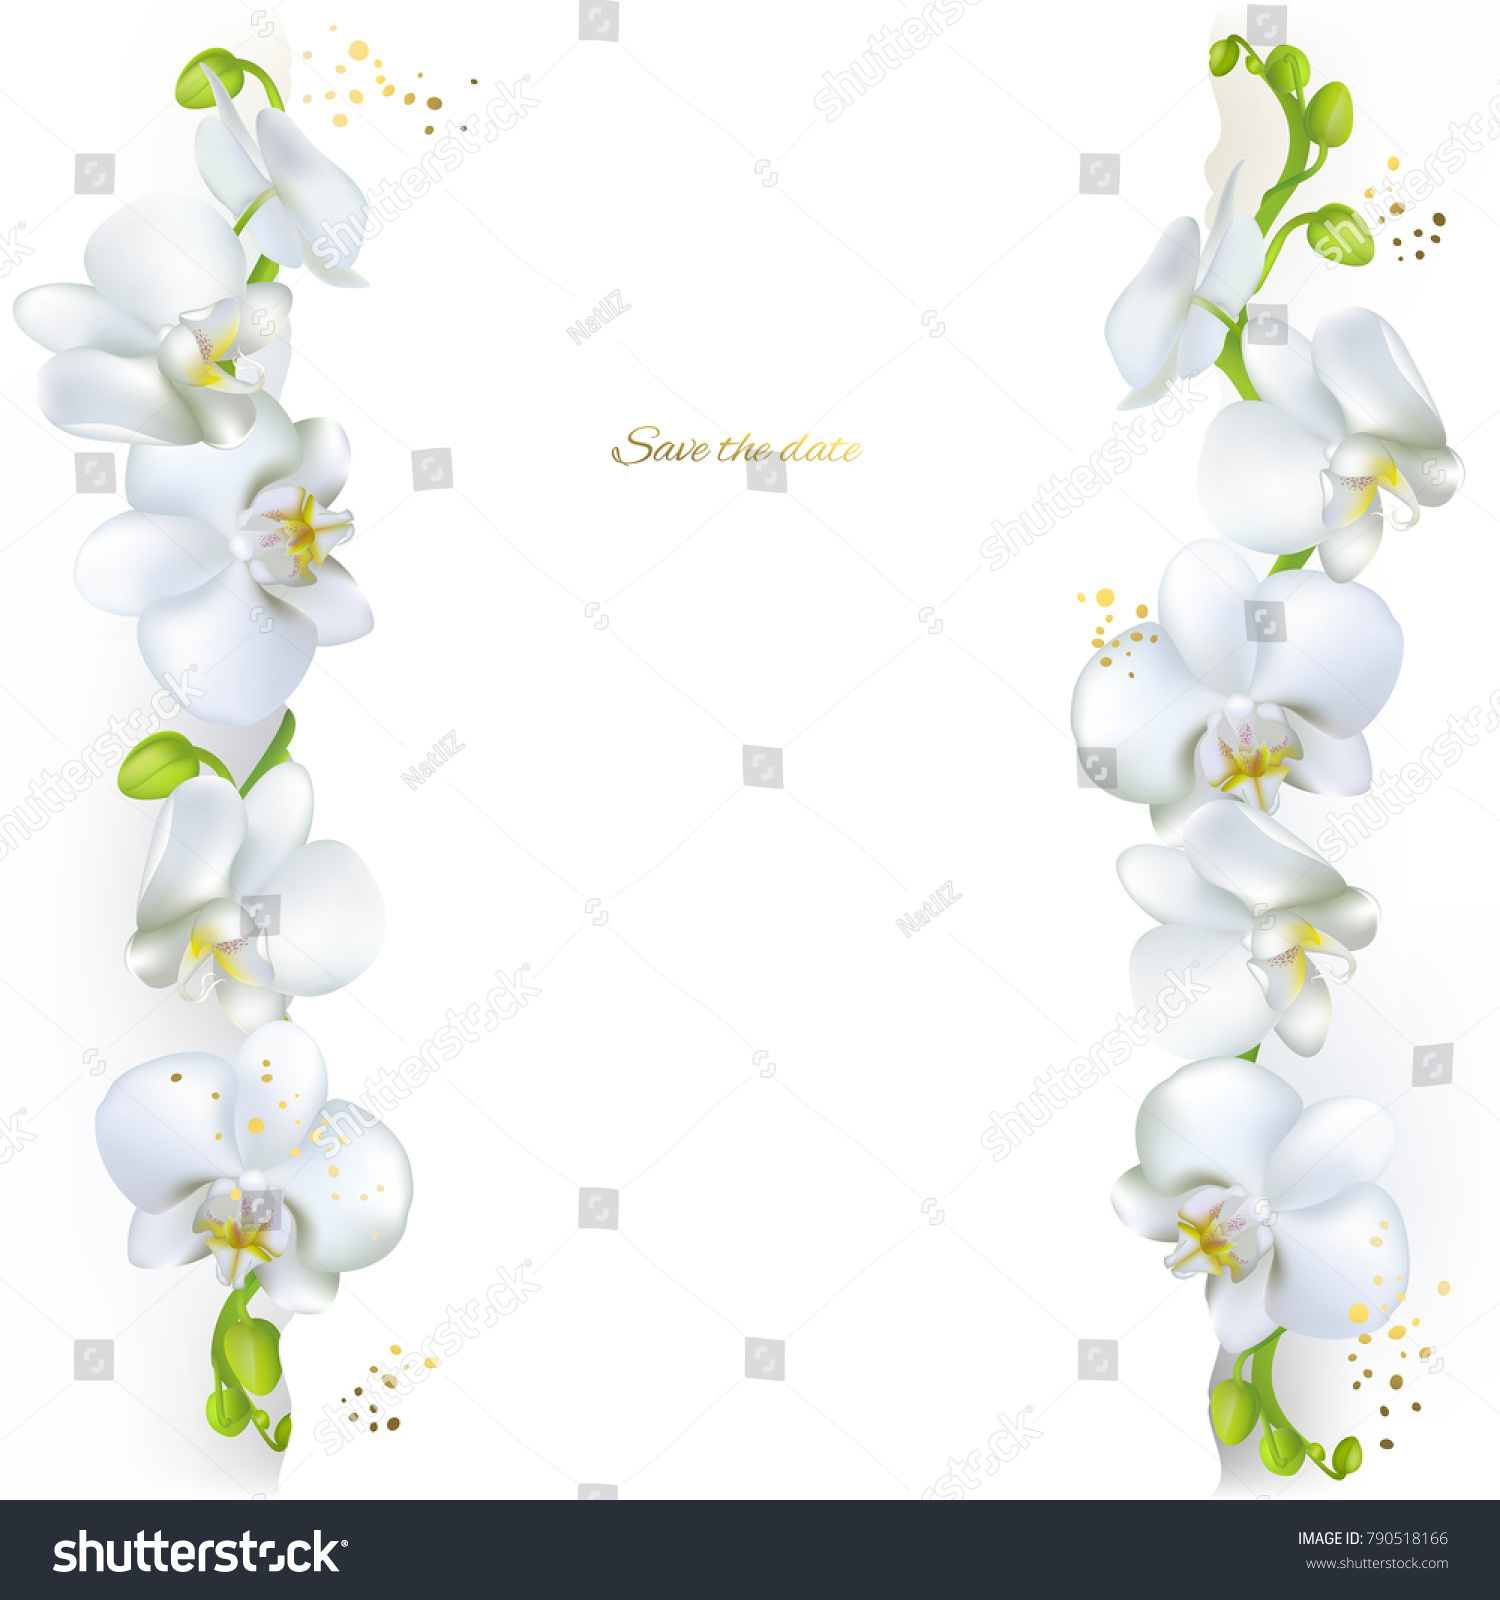 Unique white flower border plants images top wedding gowns orchids white flowers tropical plants floral stock vector 2018 mightylinksfo